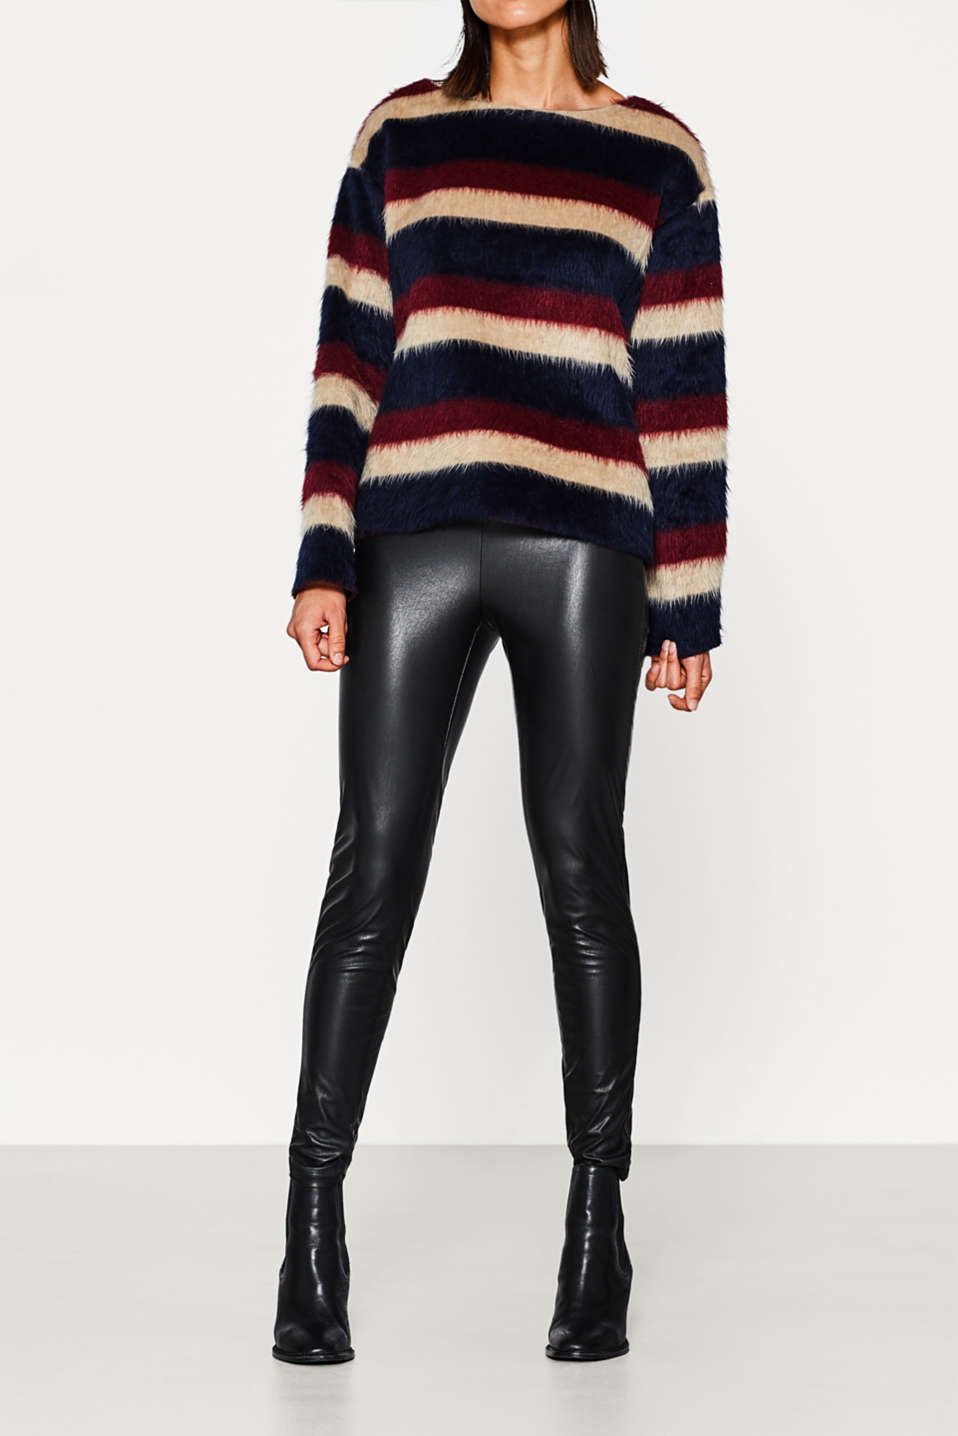 Esprit - Skinny faux leather trousers